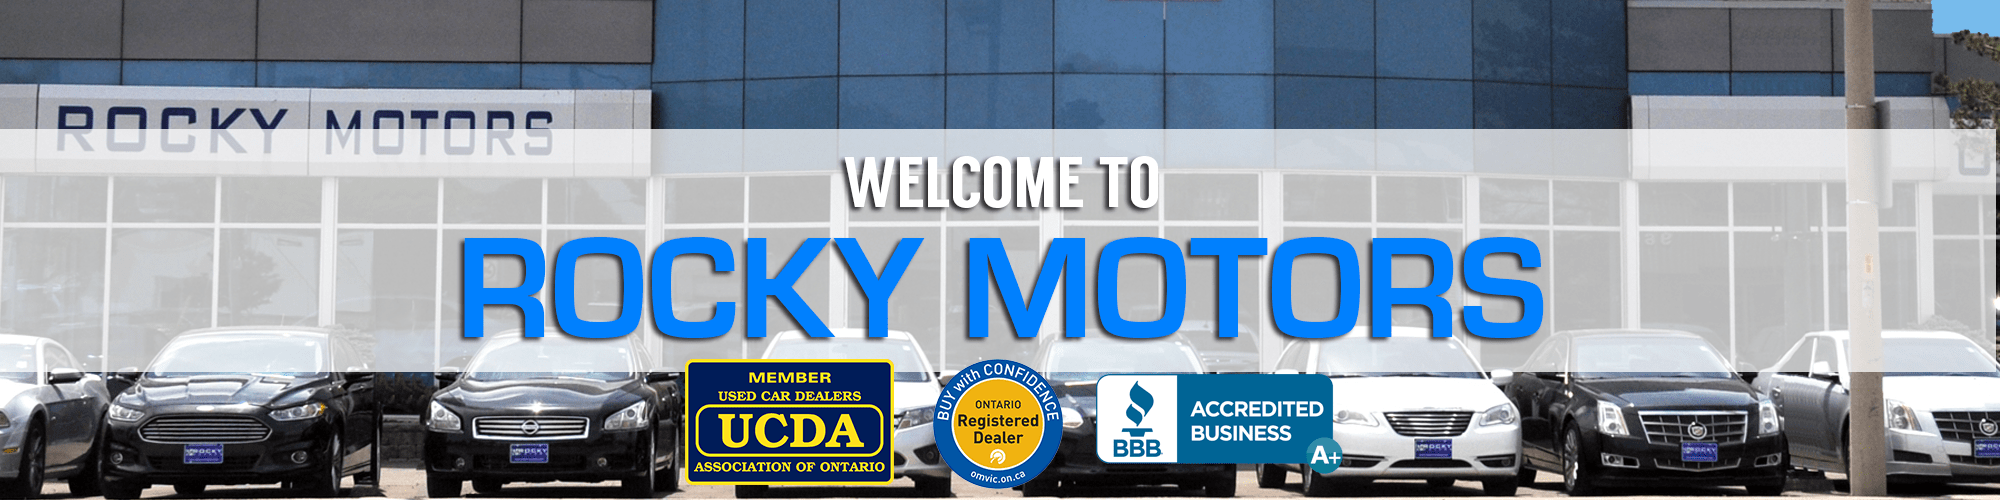 Rocky Motors - Bad Credit Auto Financing